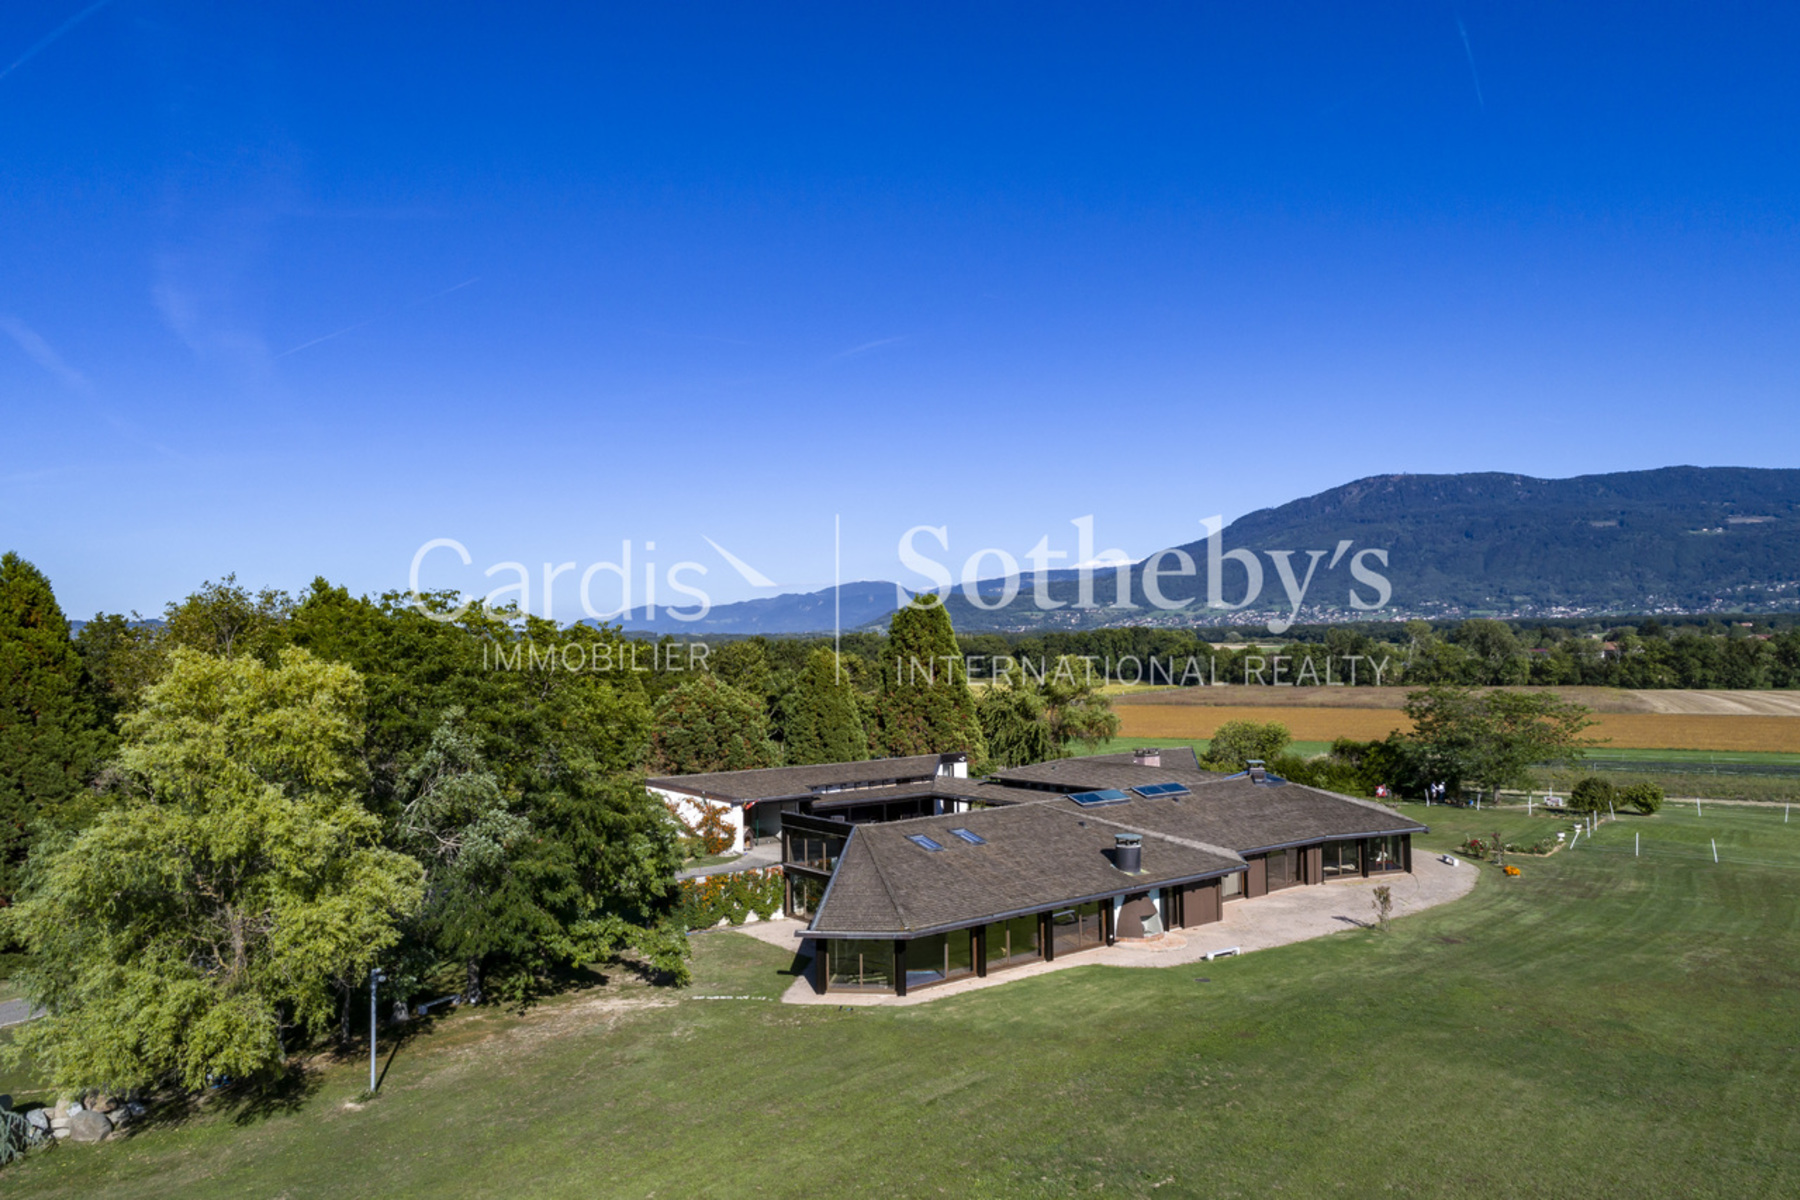 Single Family Homes のために 売買 アット Exclusivity : Idyllic location for this exceptional property. Gy Other Geneve, ジュネーブ 1251 スイス